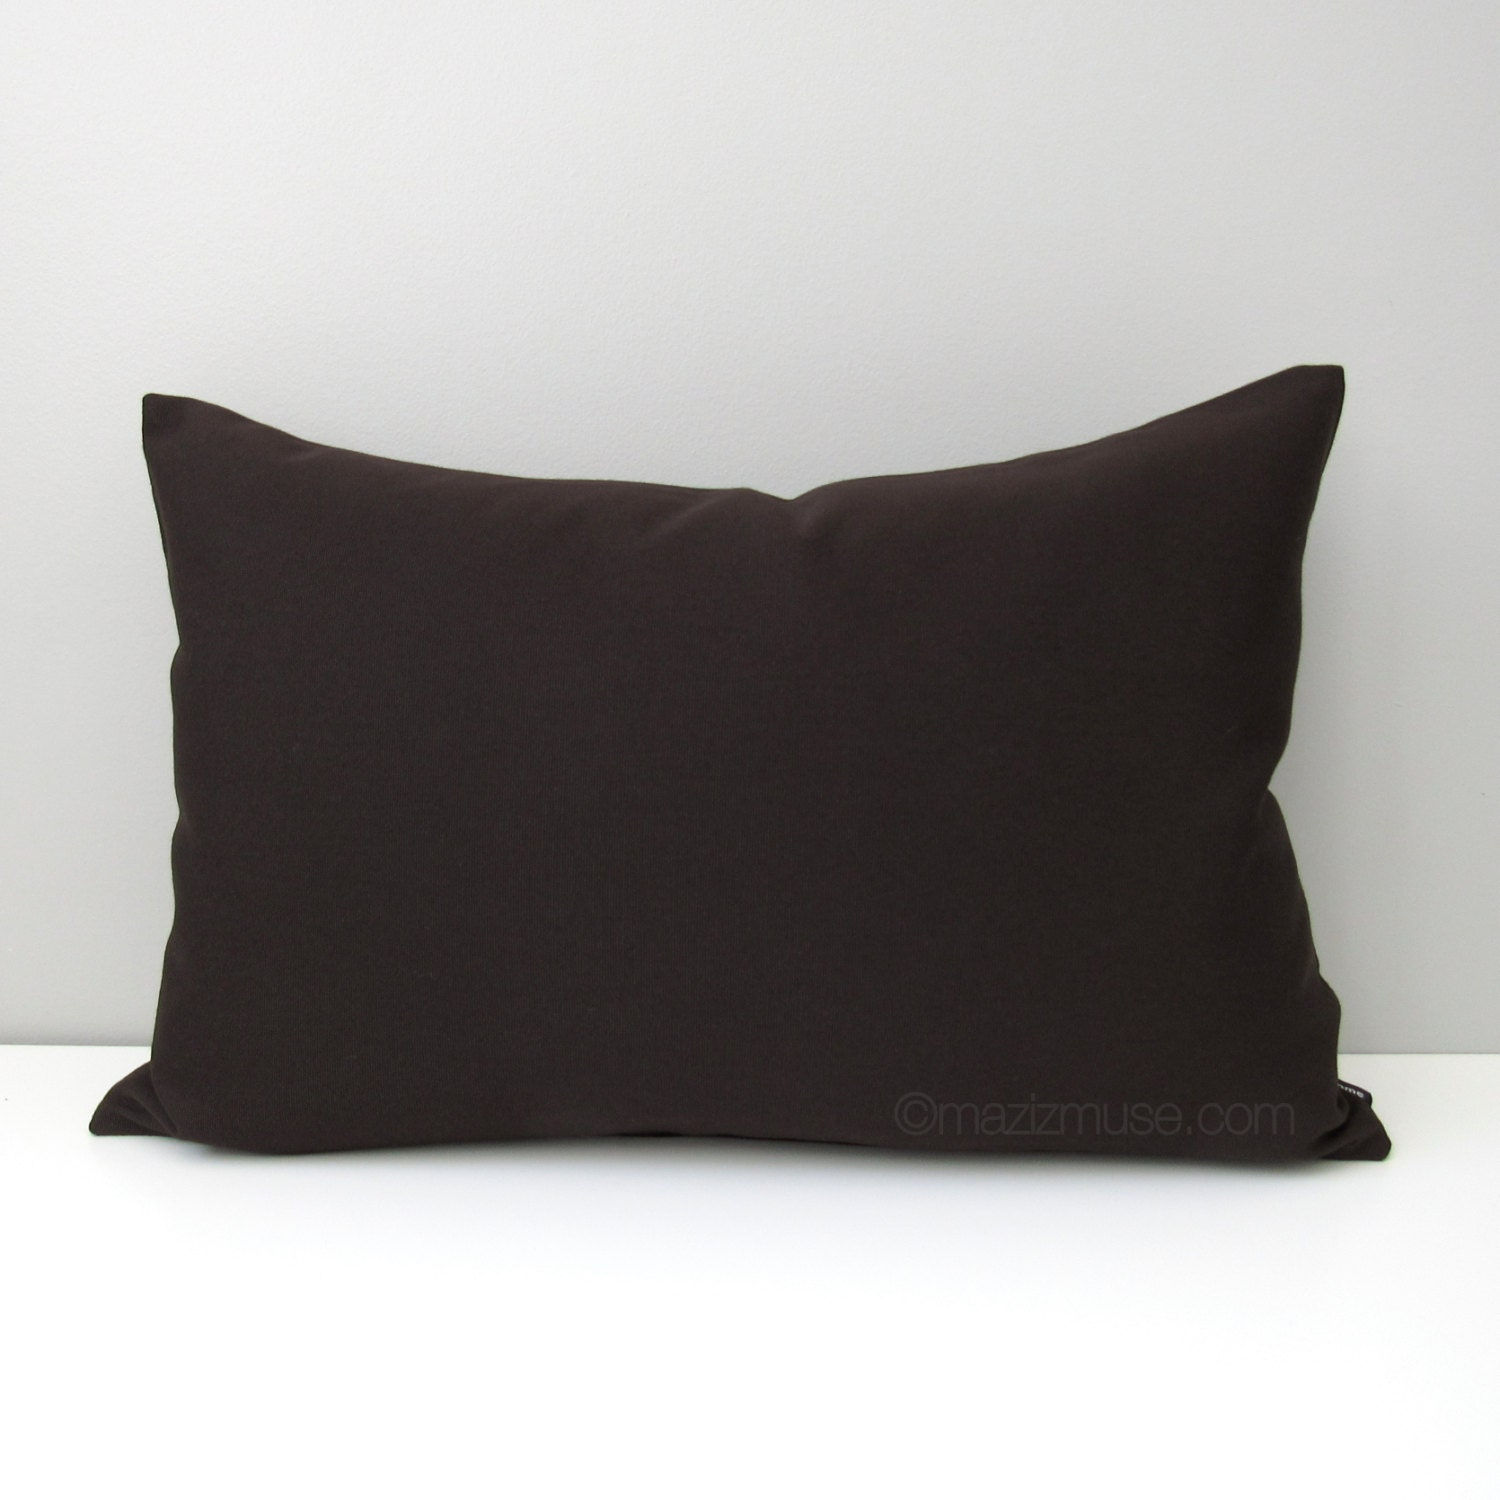 Dark Brown Throw Pillow : Dark Brown Outdoor Pillow Cover Decorative Throw Pillow Case